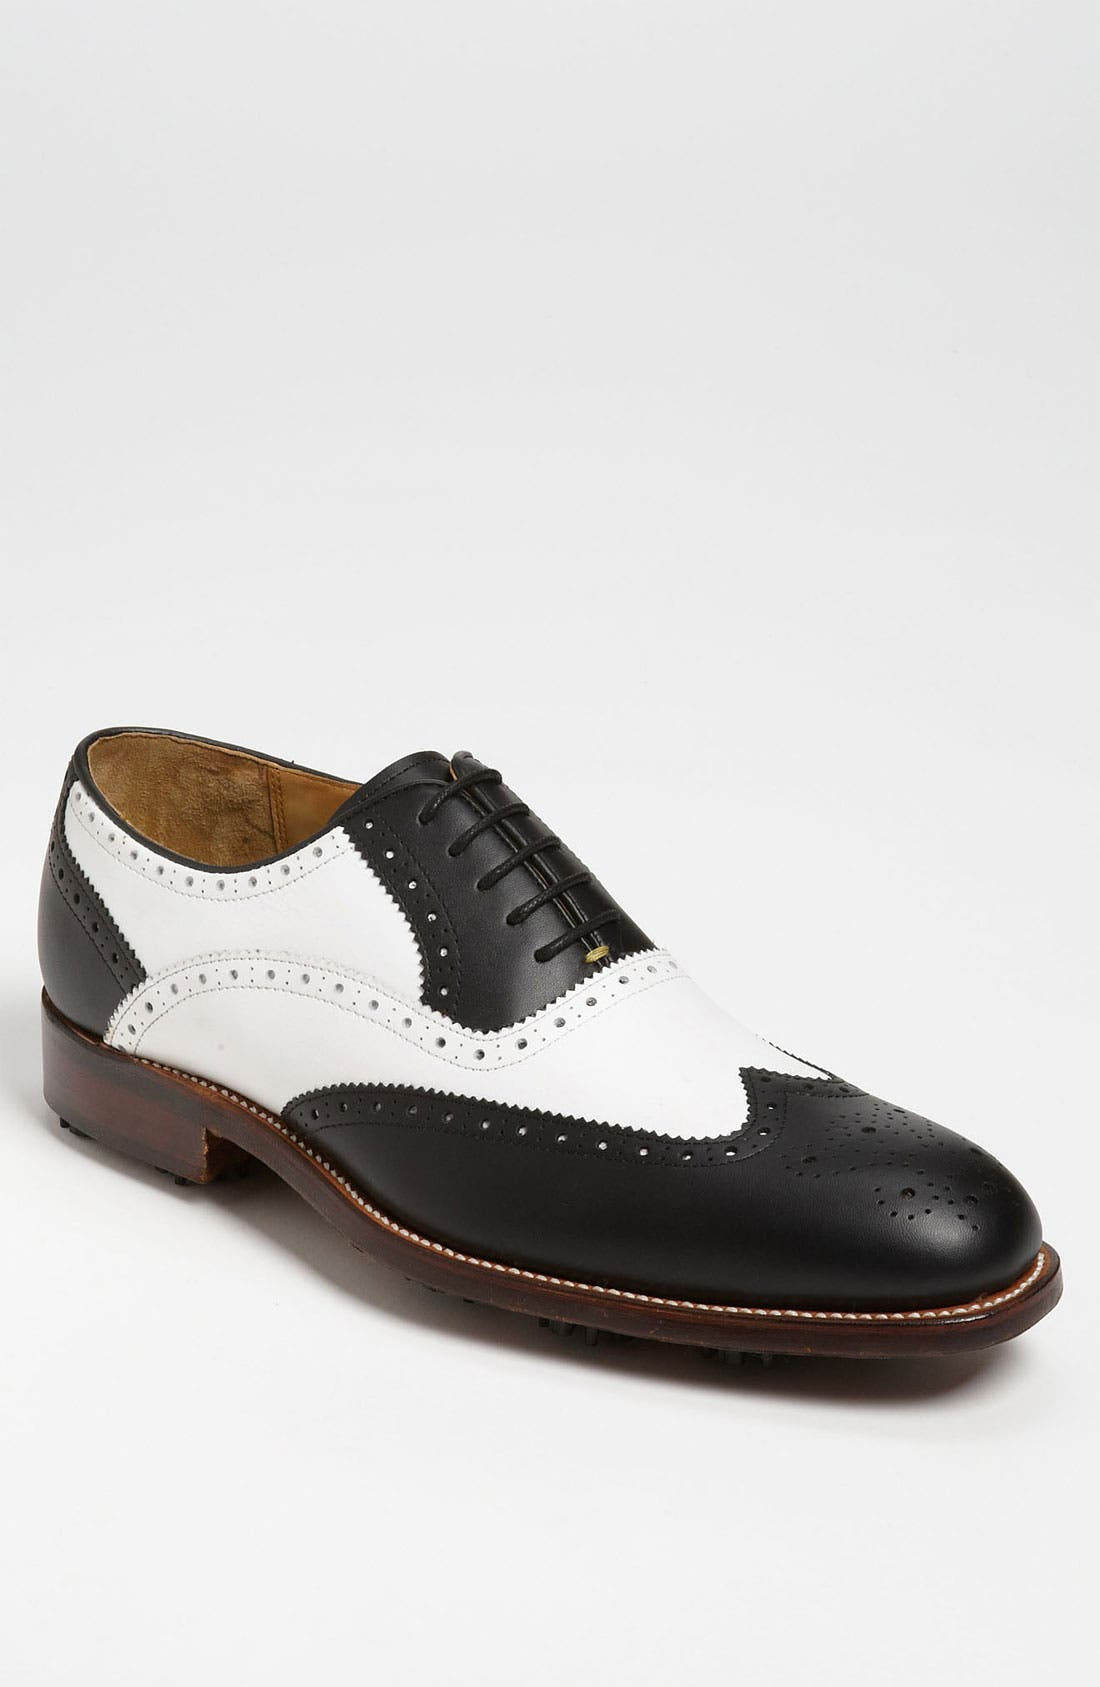 Alternate Image 1 Selected - Oliver Sweeney 'Royale' Wingtip Golf Shoe (Men)